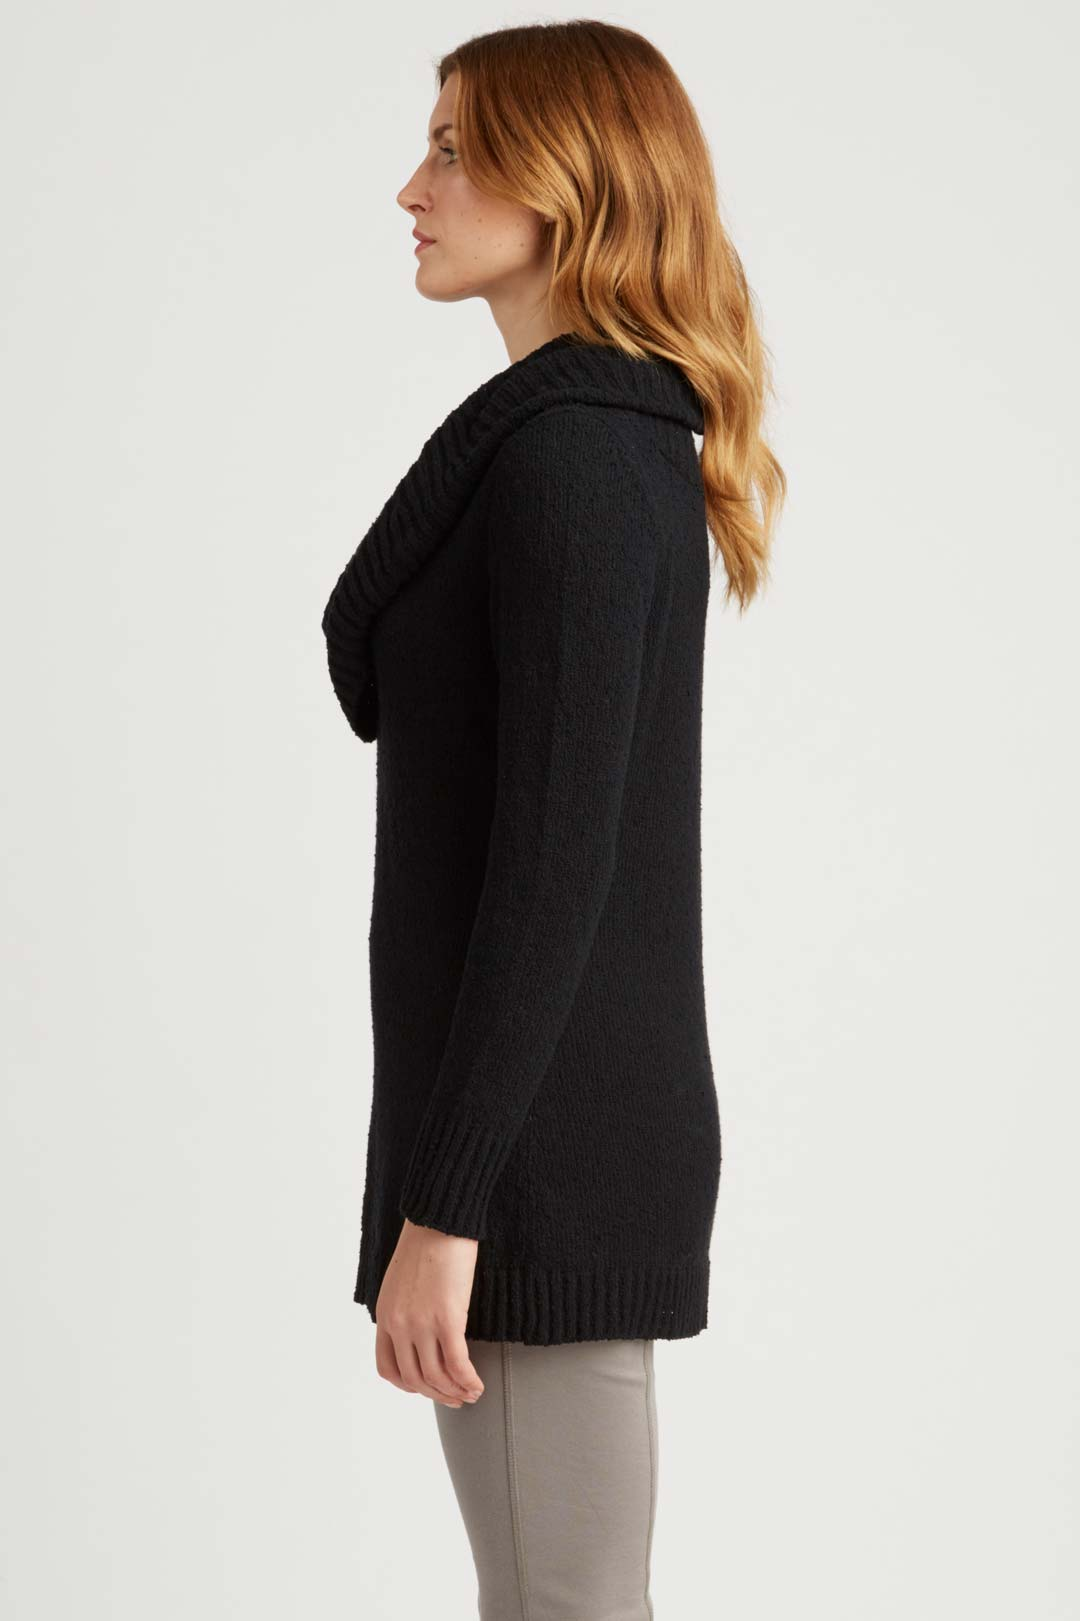 Womens Organic Cotton Pullover Sweater in Black